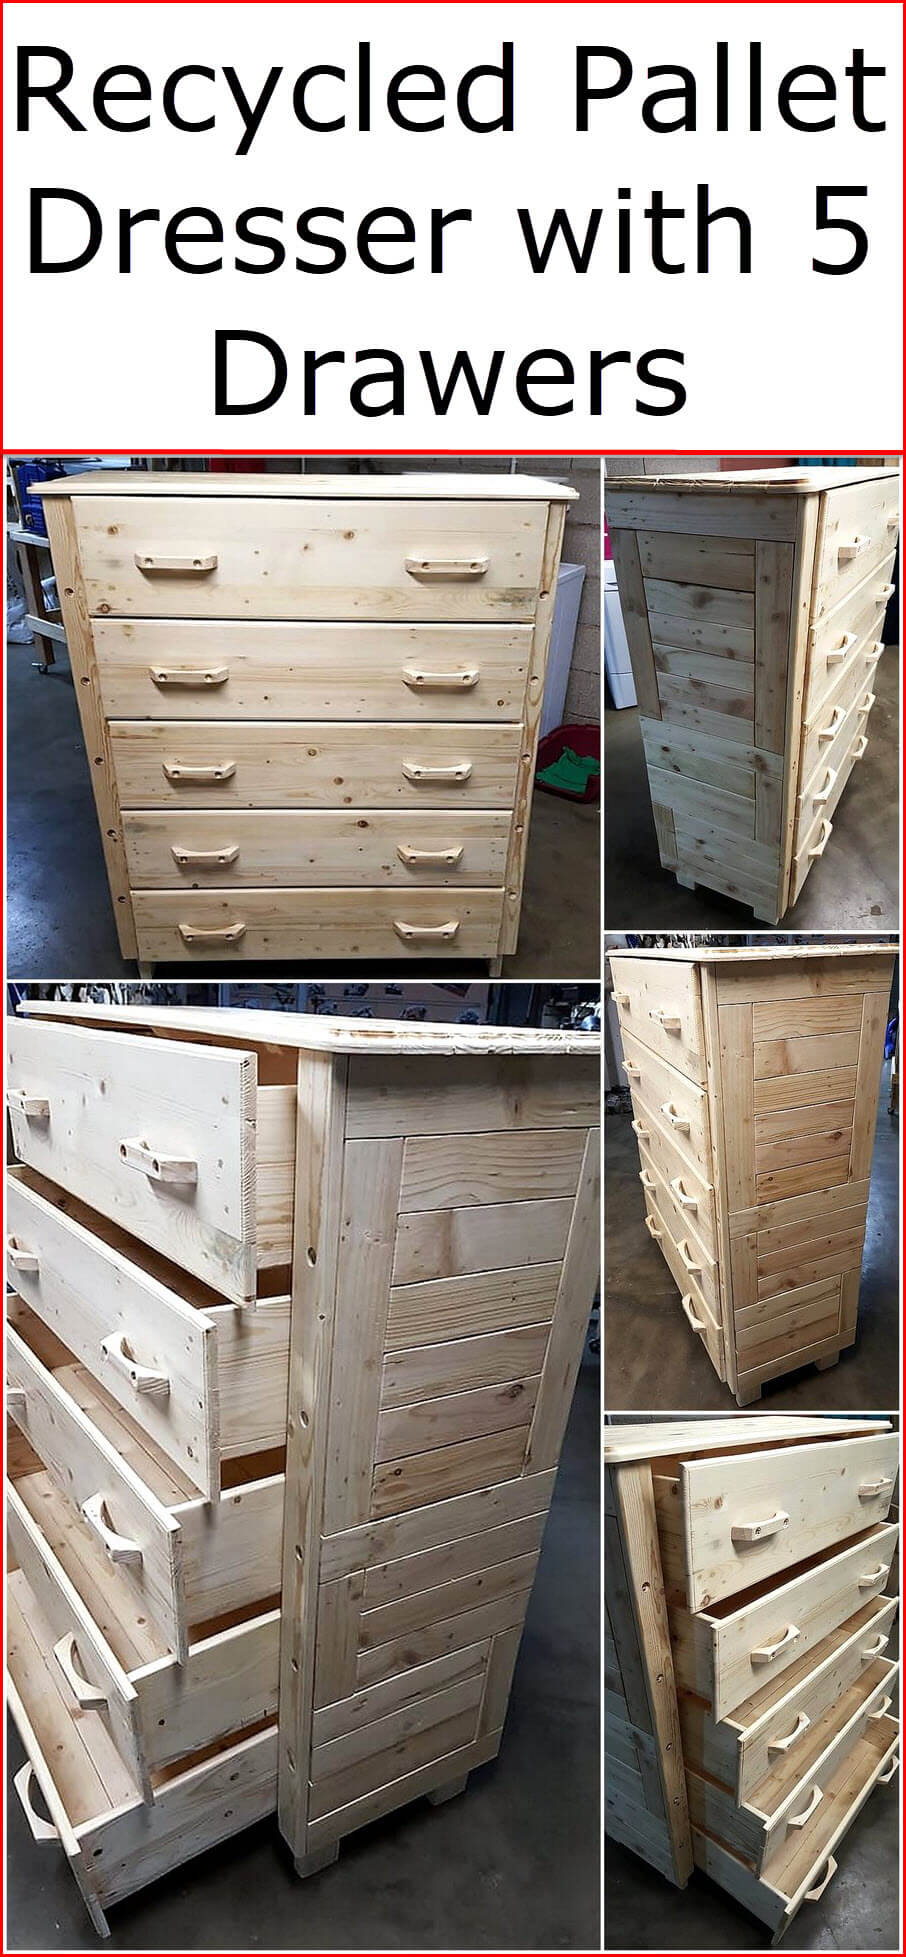 Recycled Pallet Dresser with 5 Drawers